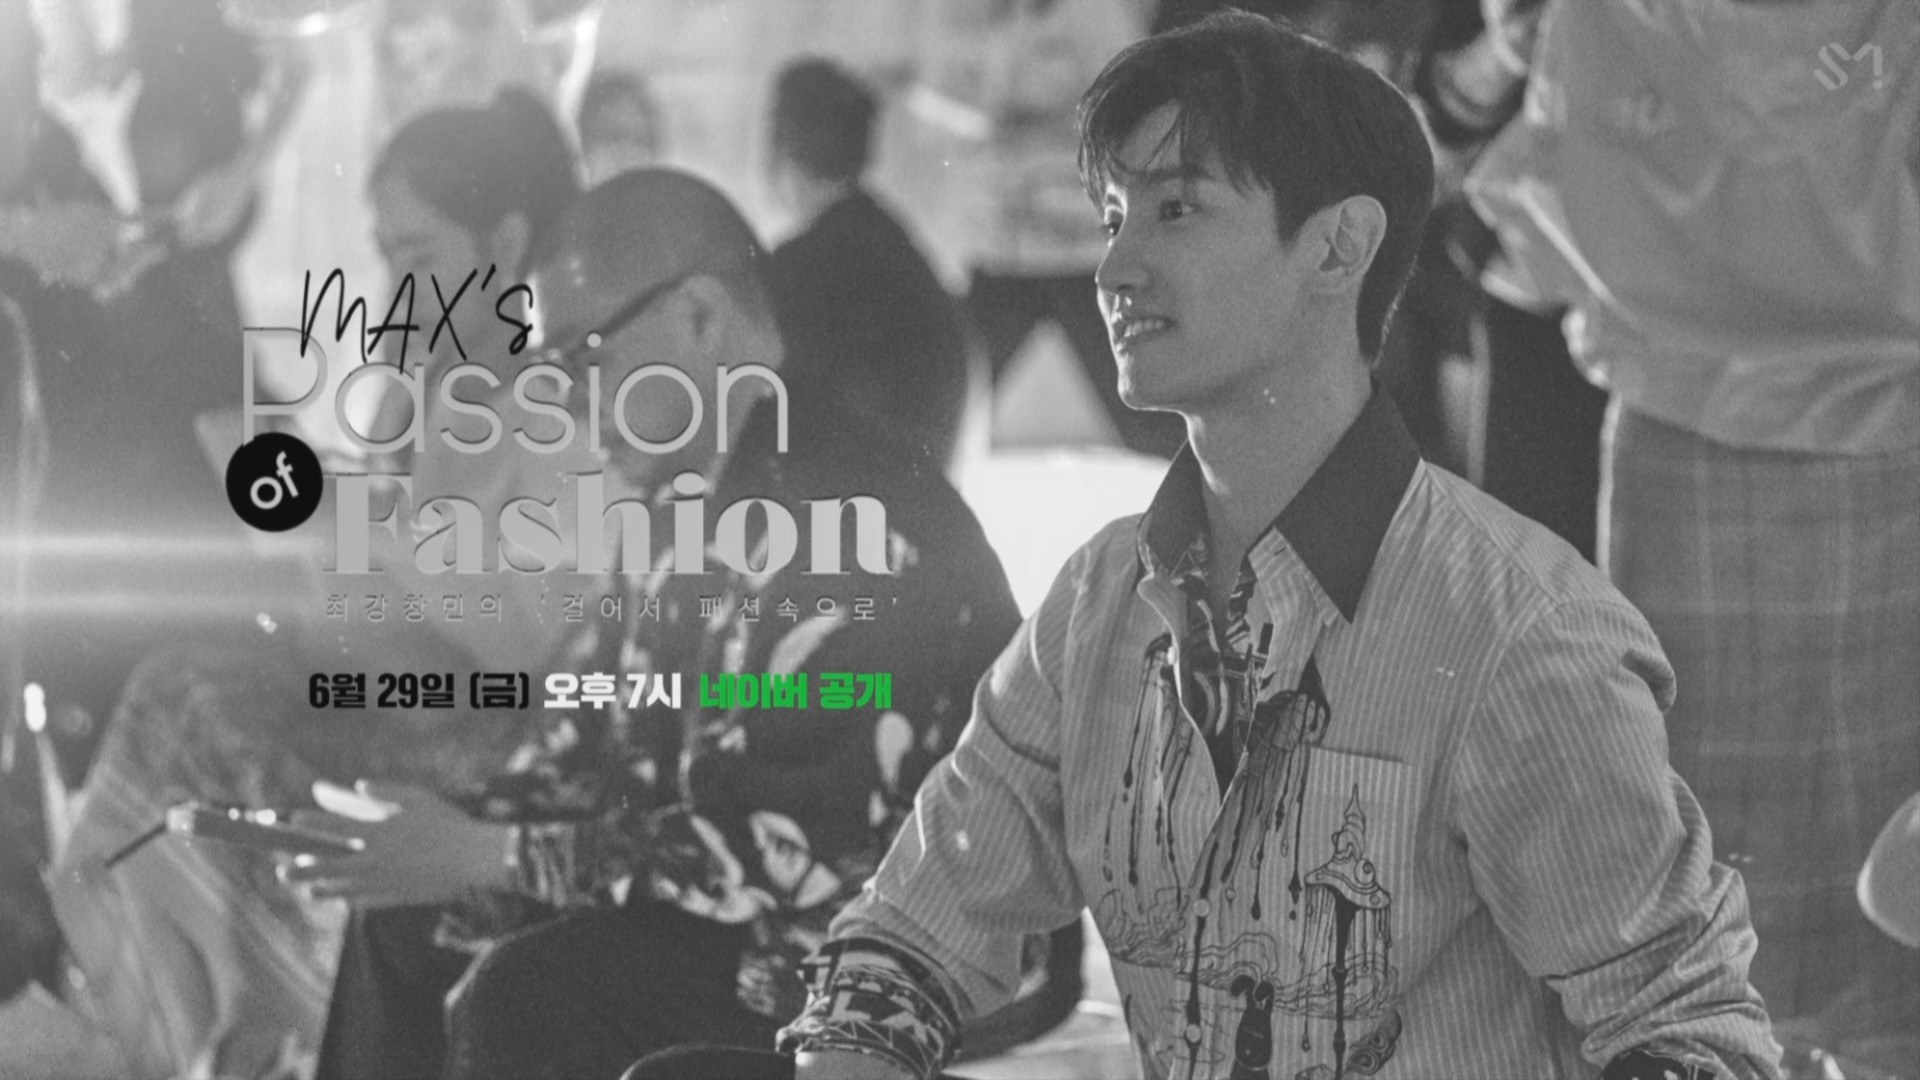 [Teaser] MAX CHAGMIN's Passion of Fashion (최강창민의 걸어서 패션 속으로)